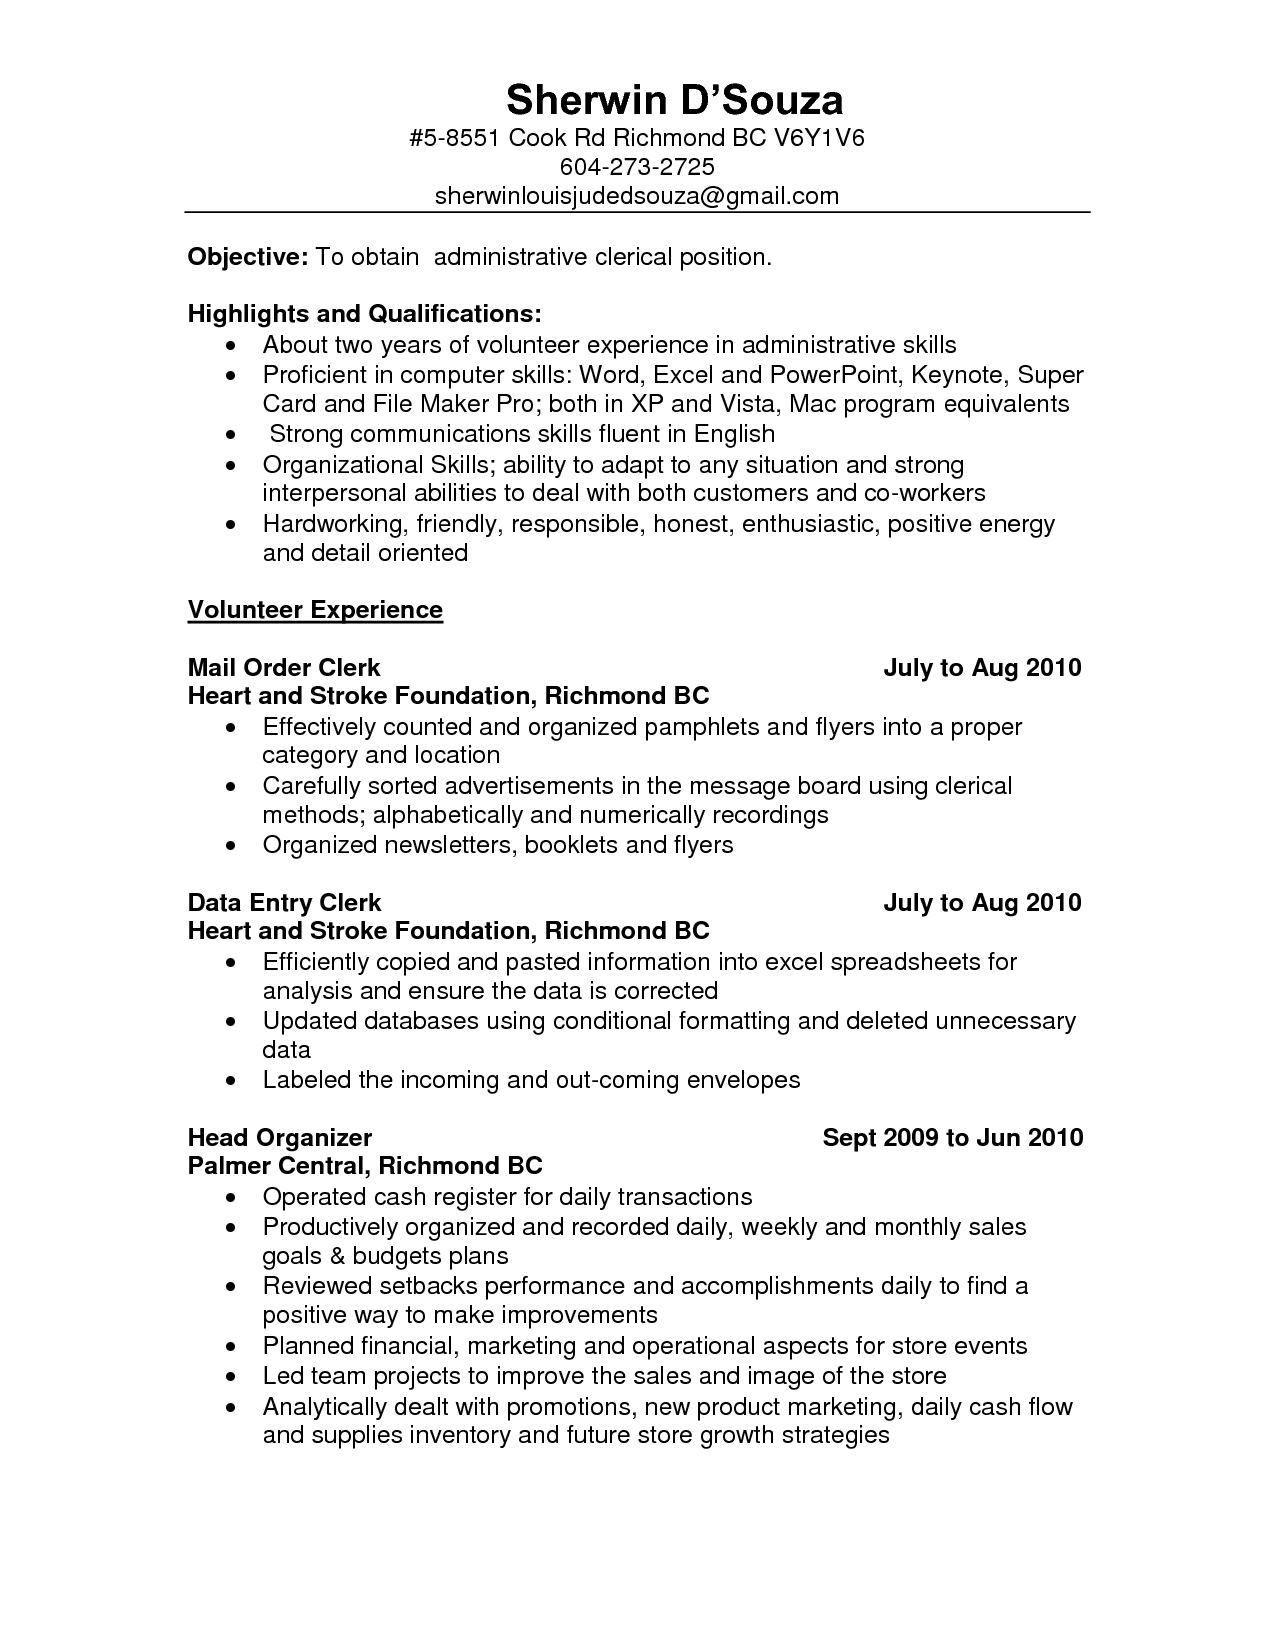 Law Clerk Resume Sample Highlights And Qualifications  Resume Qualification Examples